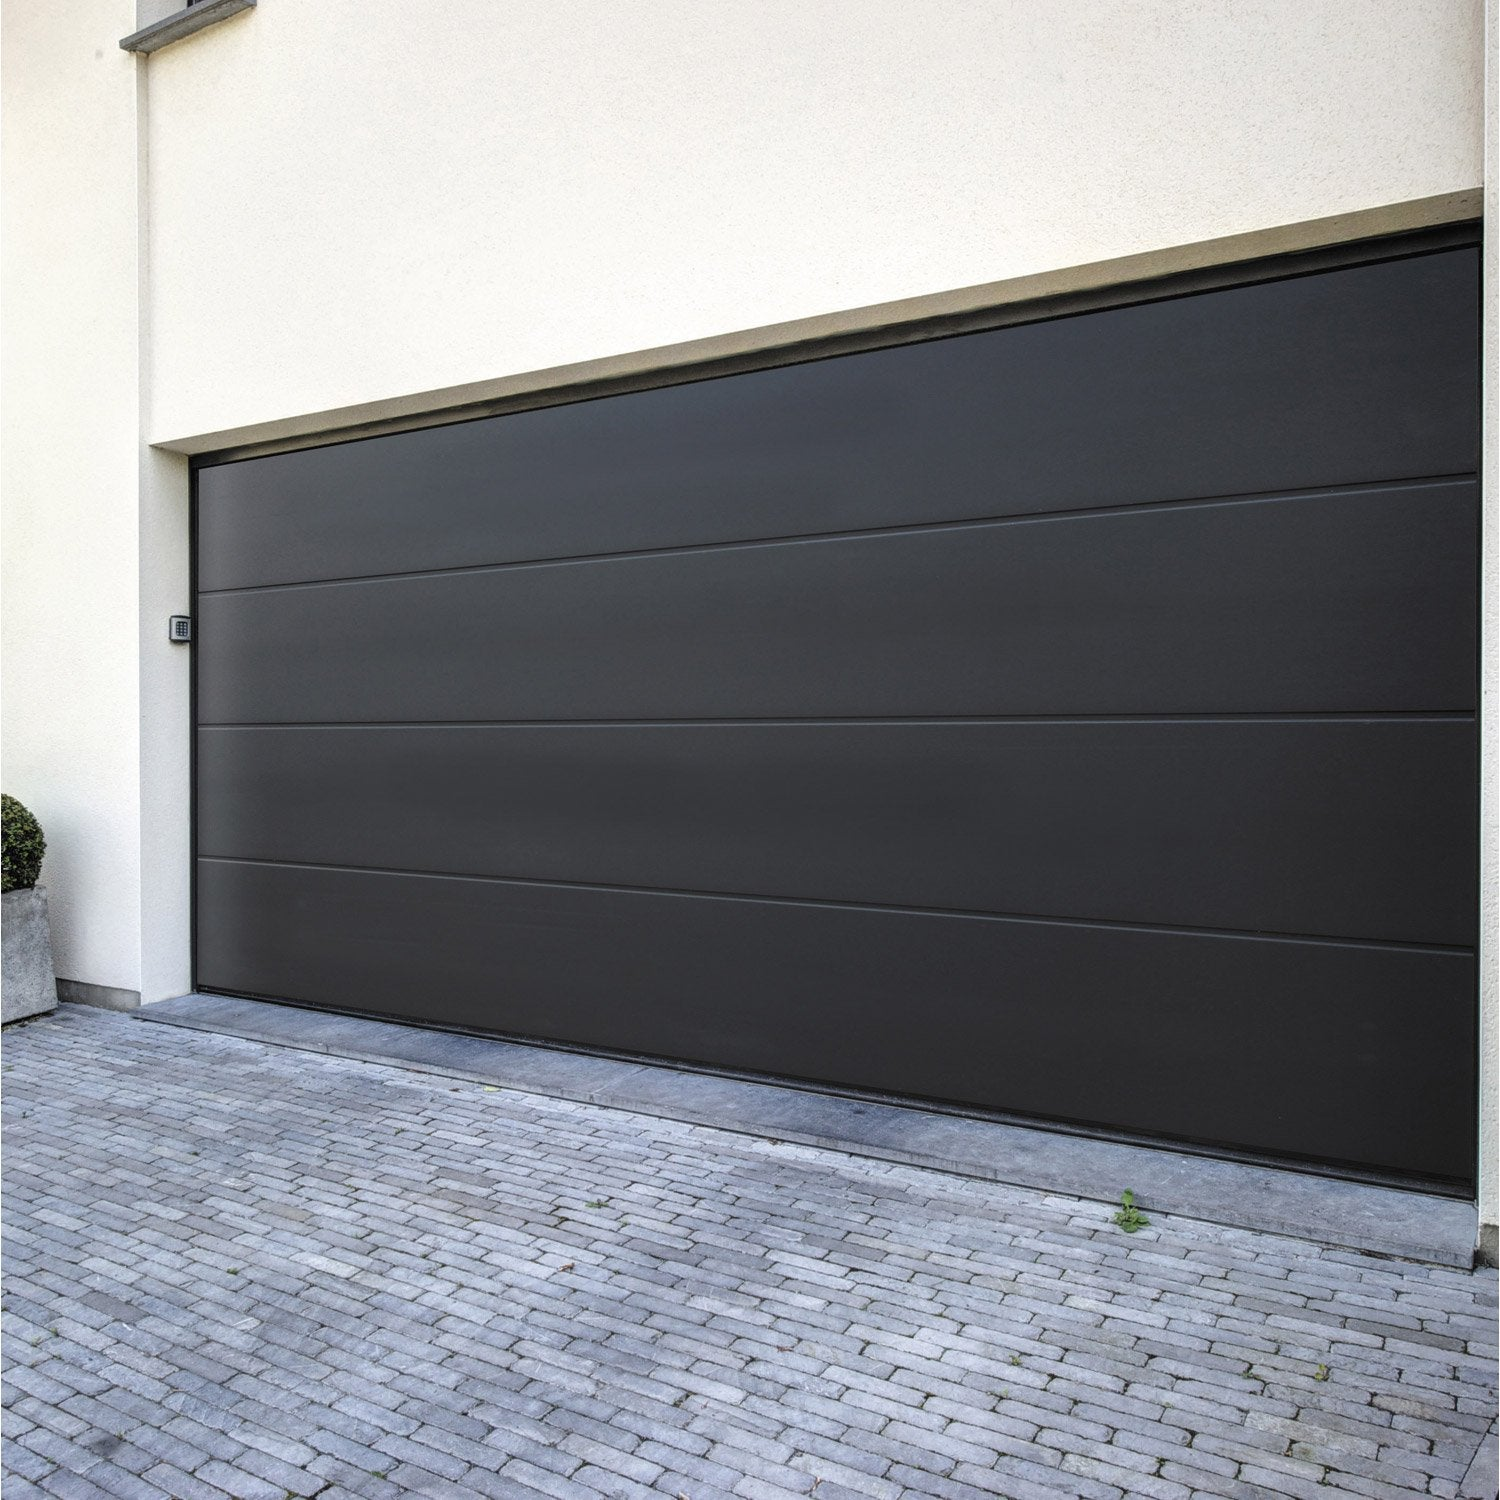 Carrelage design carrelage pour garage leroy merlin - Portes de garage leroy merlin ...